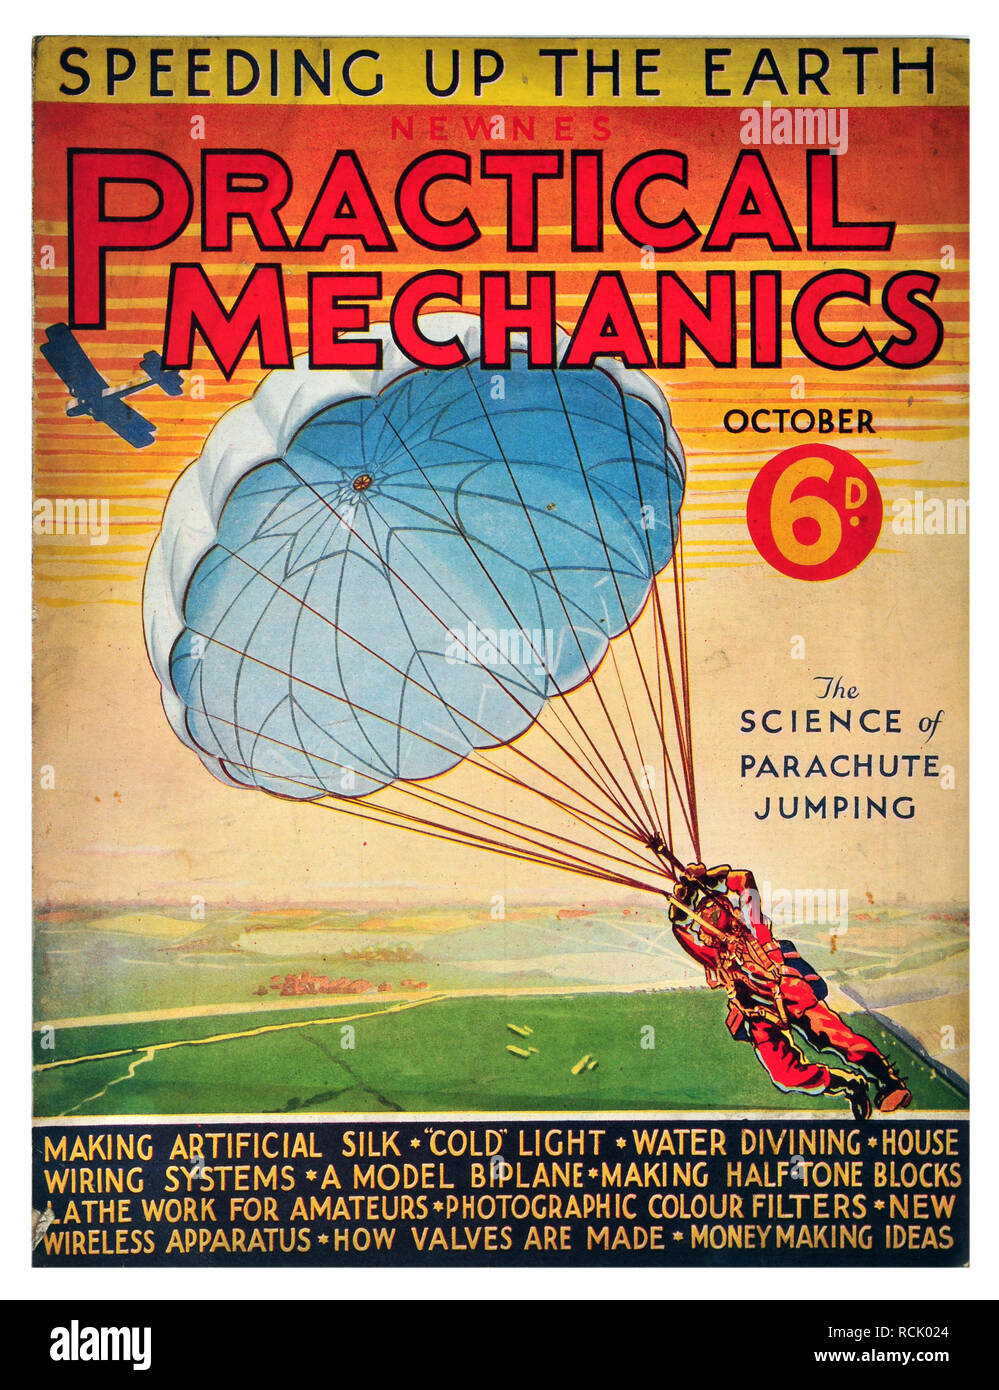 Newnes practical mechanics October 1934 costing 6D The science of parachute jumping - Stock Image